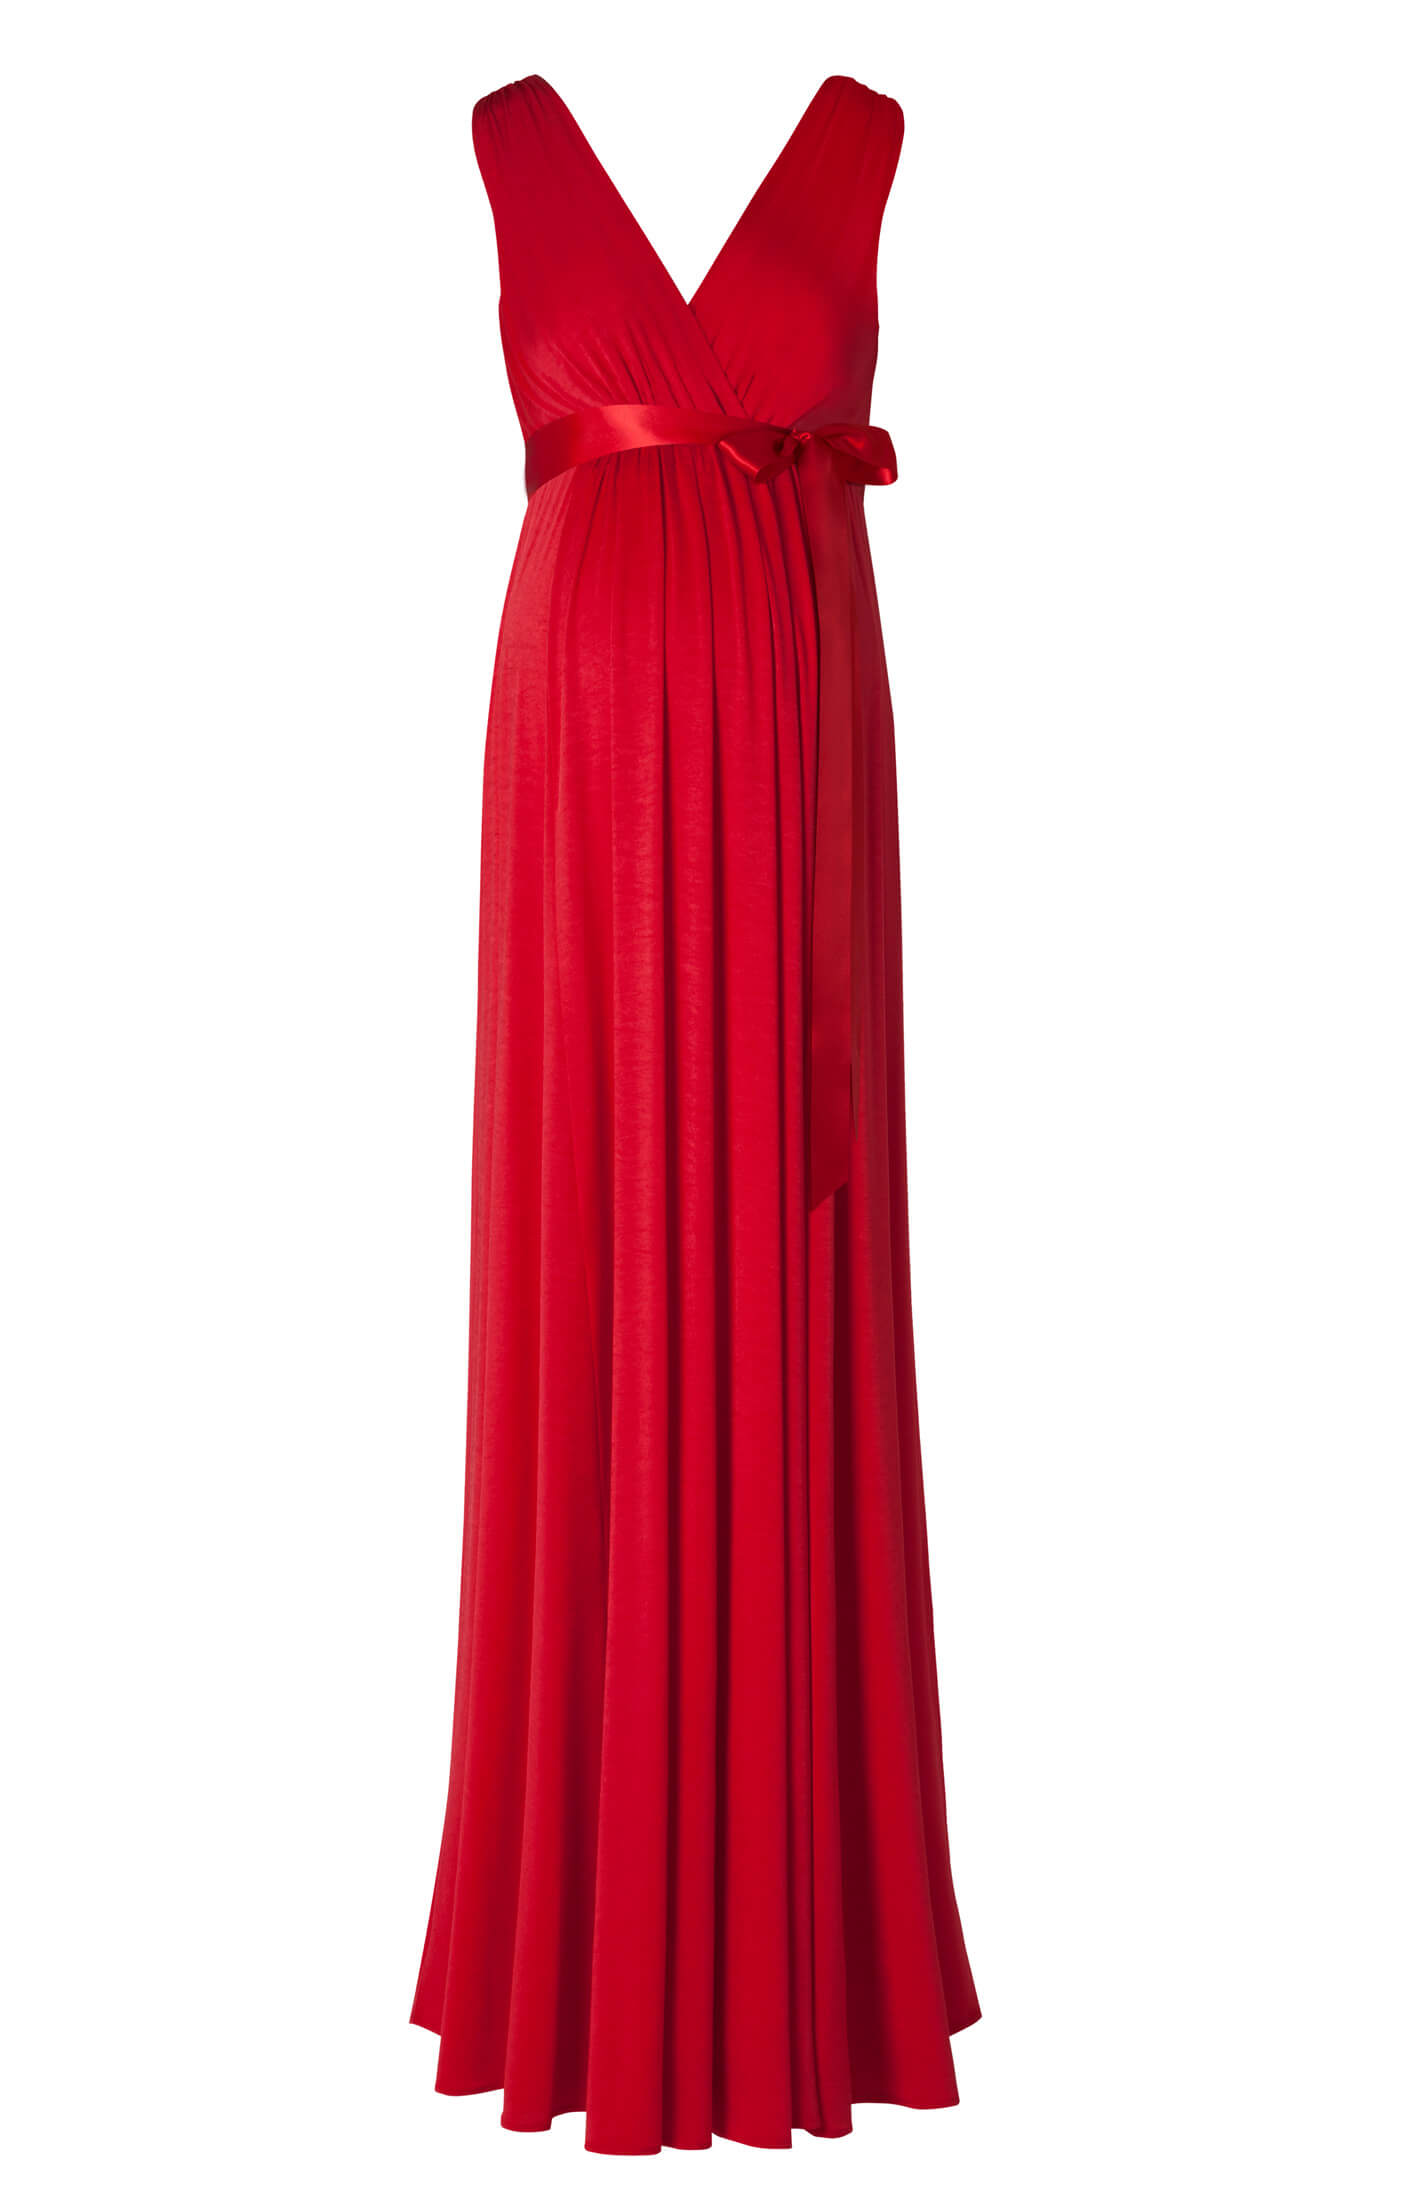 Anastasia Maternity Gown Long Sunset Red Maternity